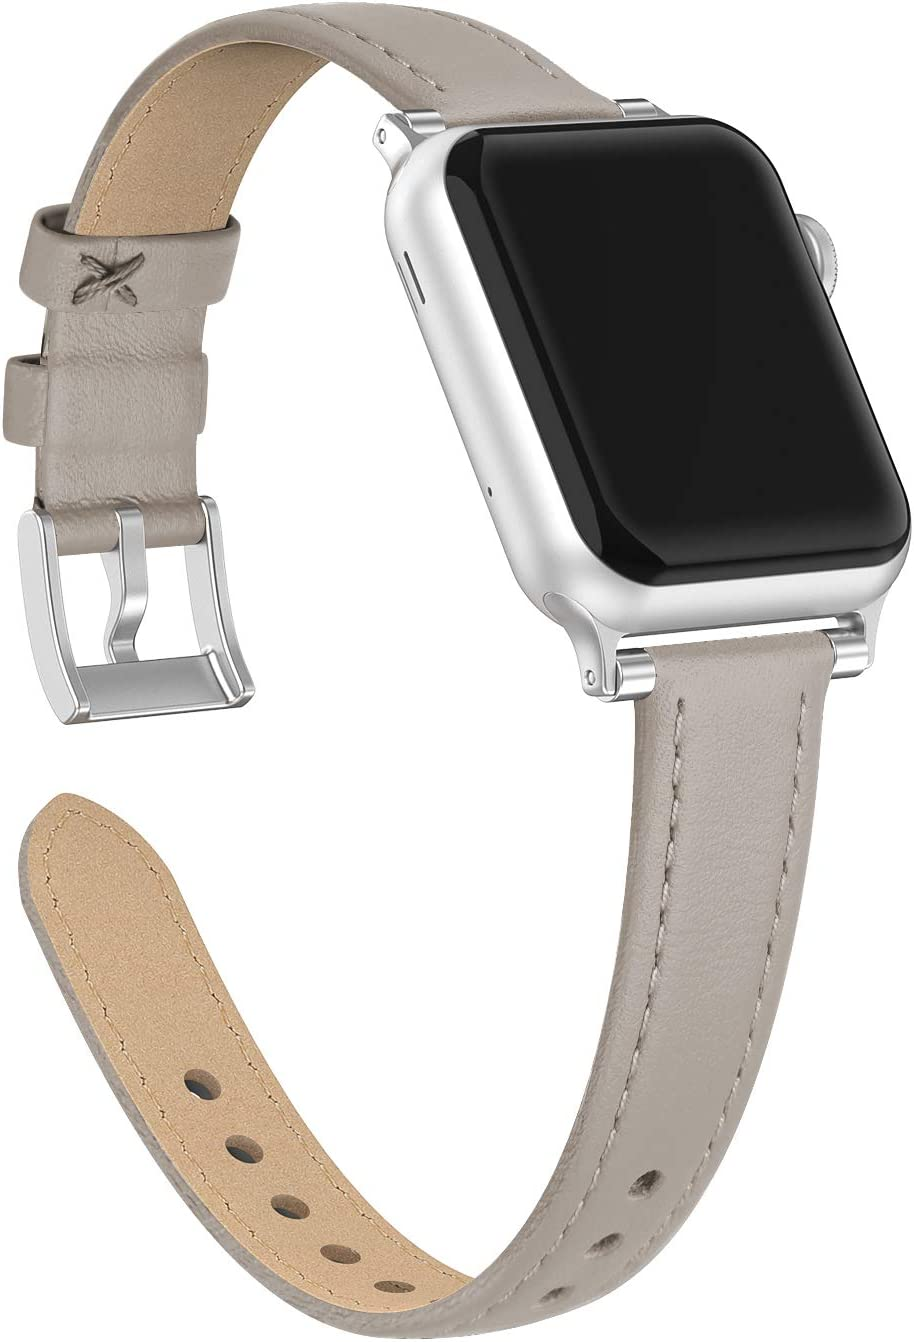 Bandiction Compatible with Apple Watch Band 38mm 40mm, Slim Dual Bead Genuine Leather Band Strap Compatible with Apple Watch 5 4 3 2 1 Sport and Edition (Pin Grain Gray)